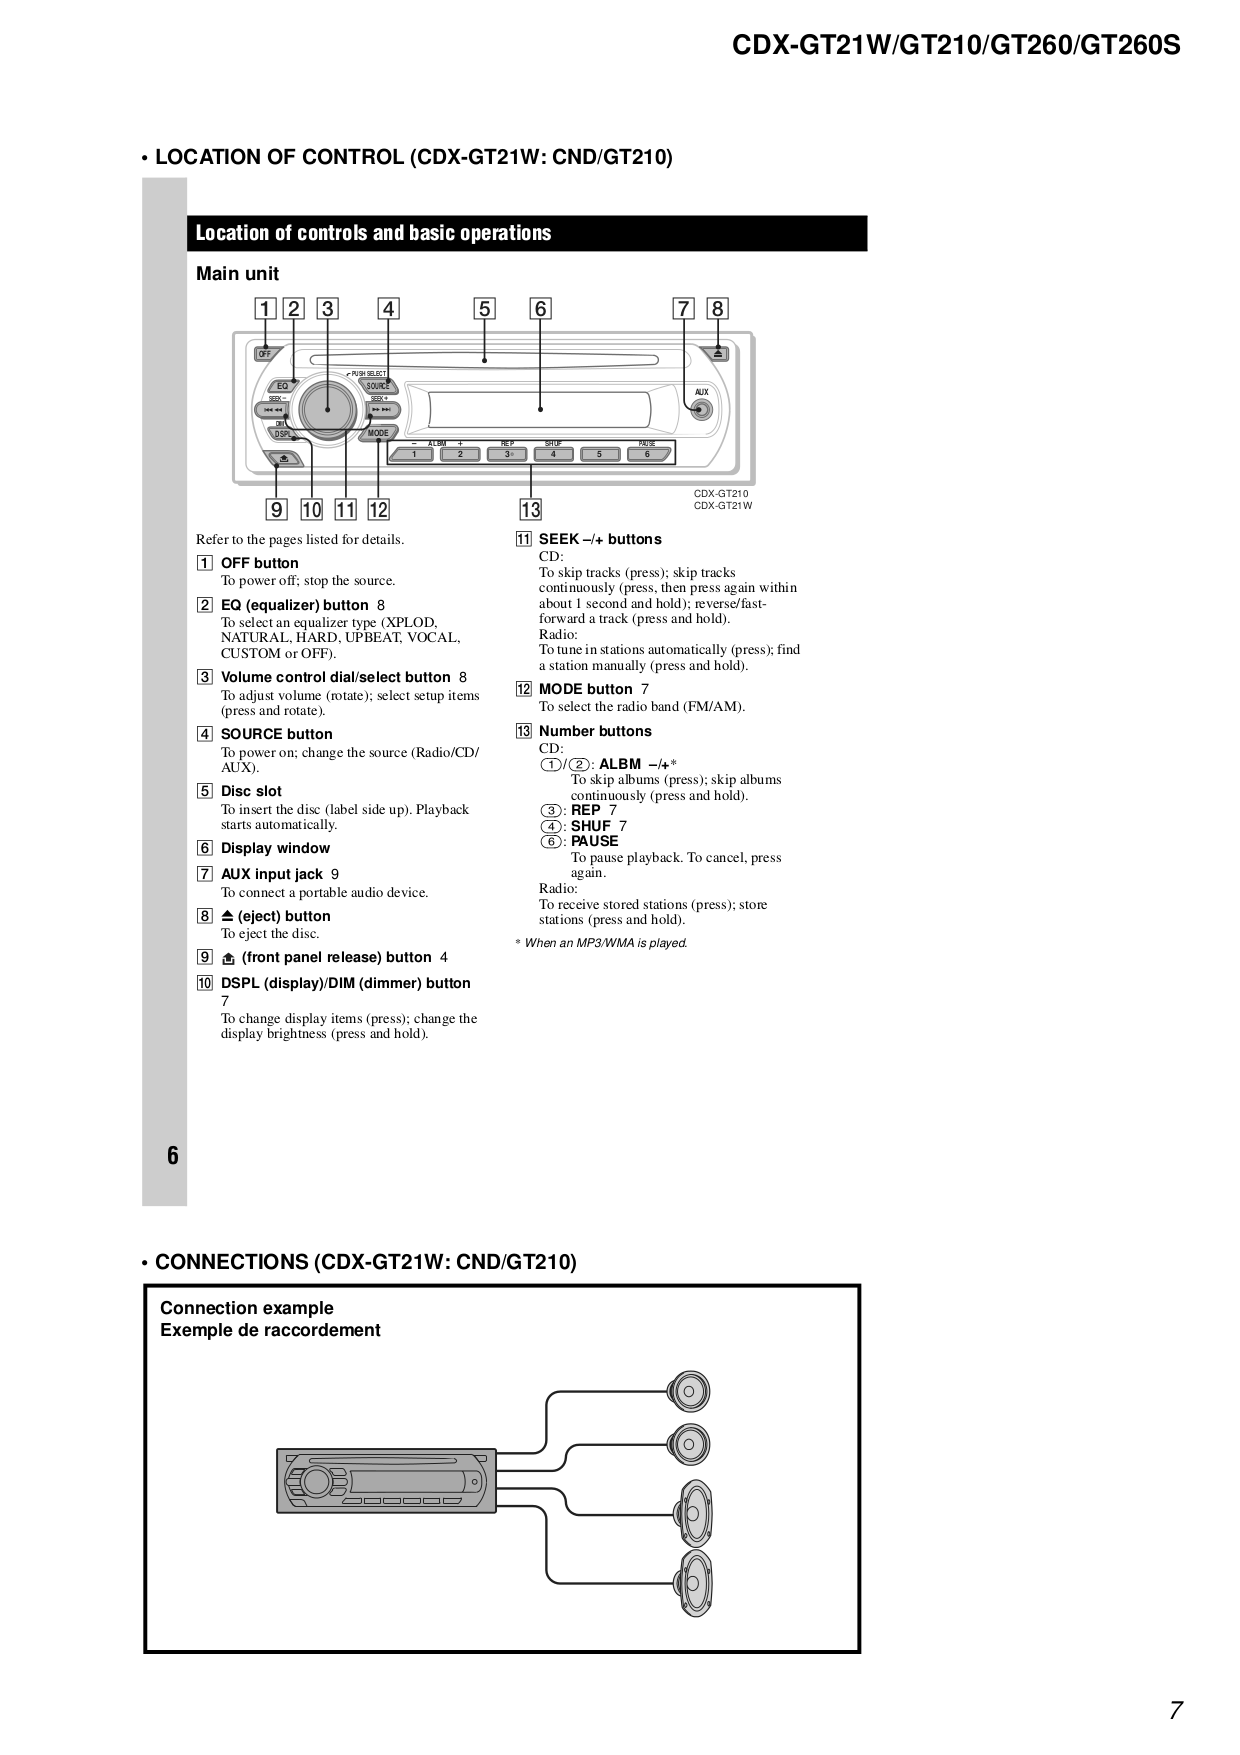 Sony Cdx Gt210 Wiring Harness 29 Diagram Images F7710 For Xplod Gt21w Gt260pdf 6resize6652c941